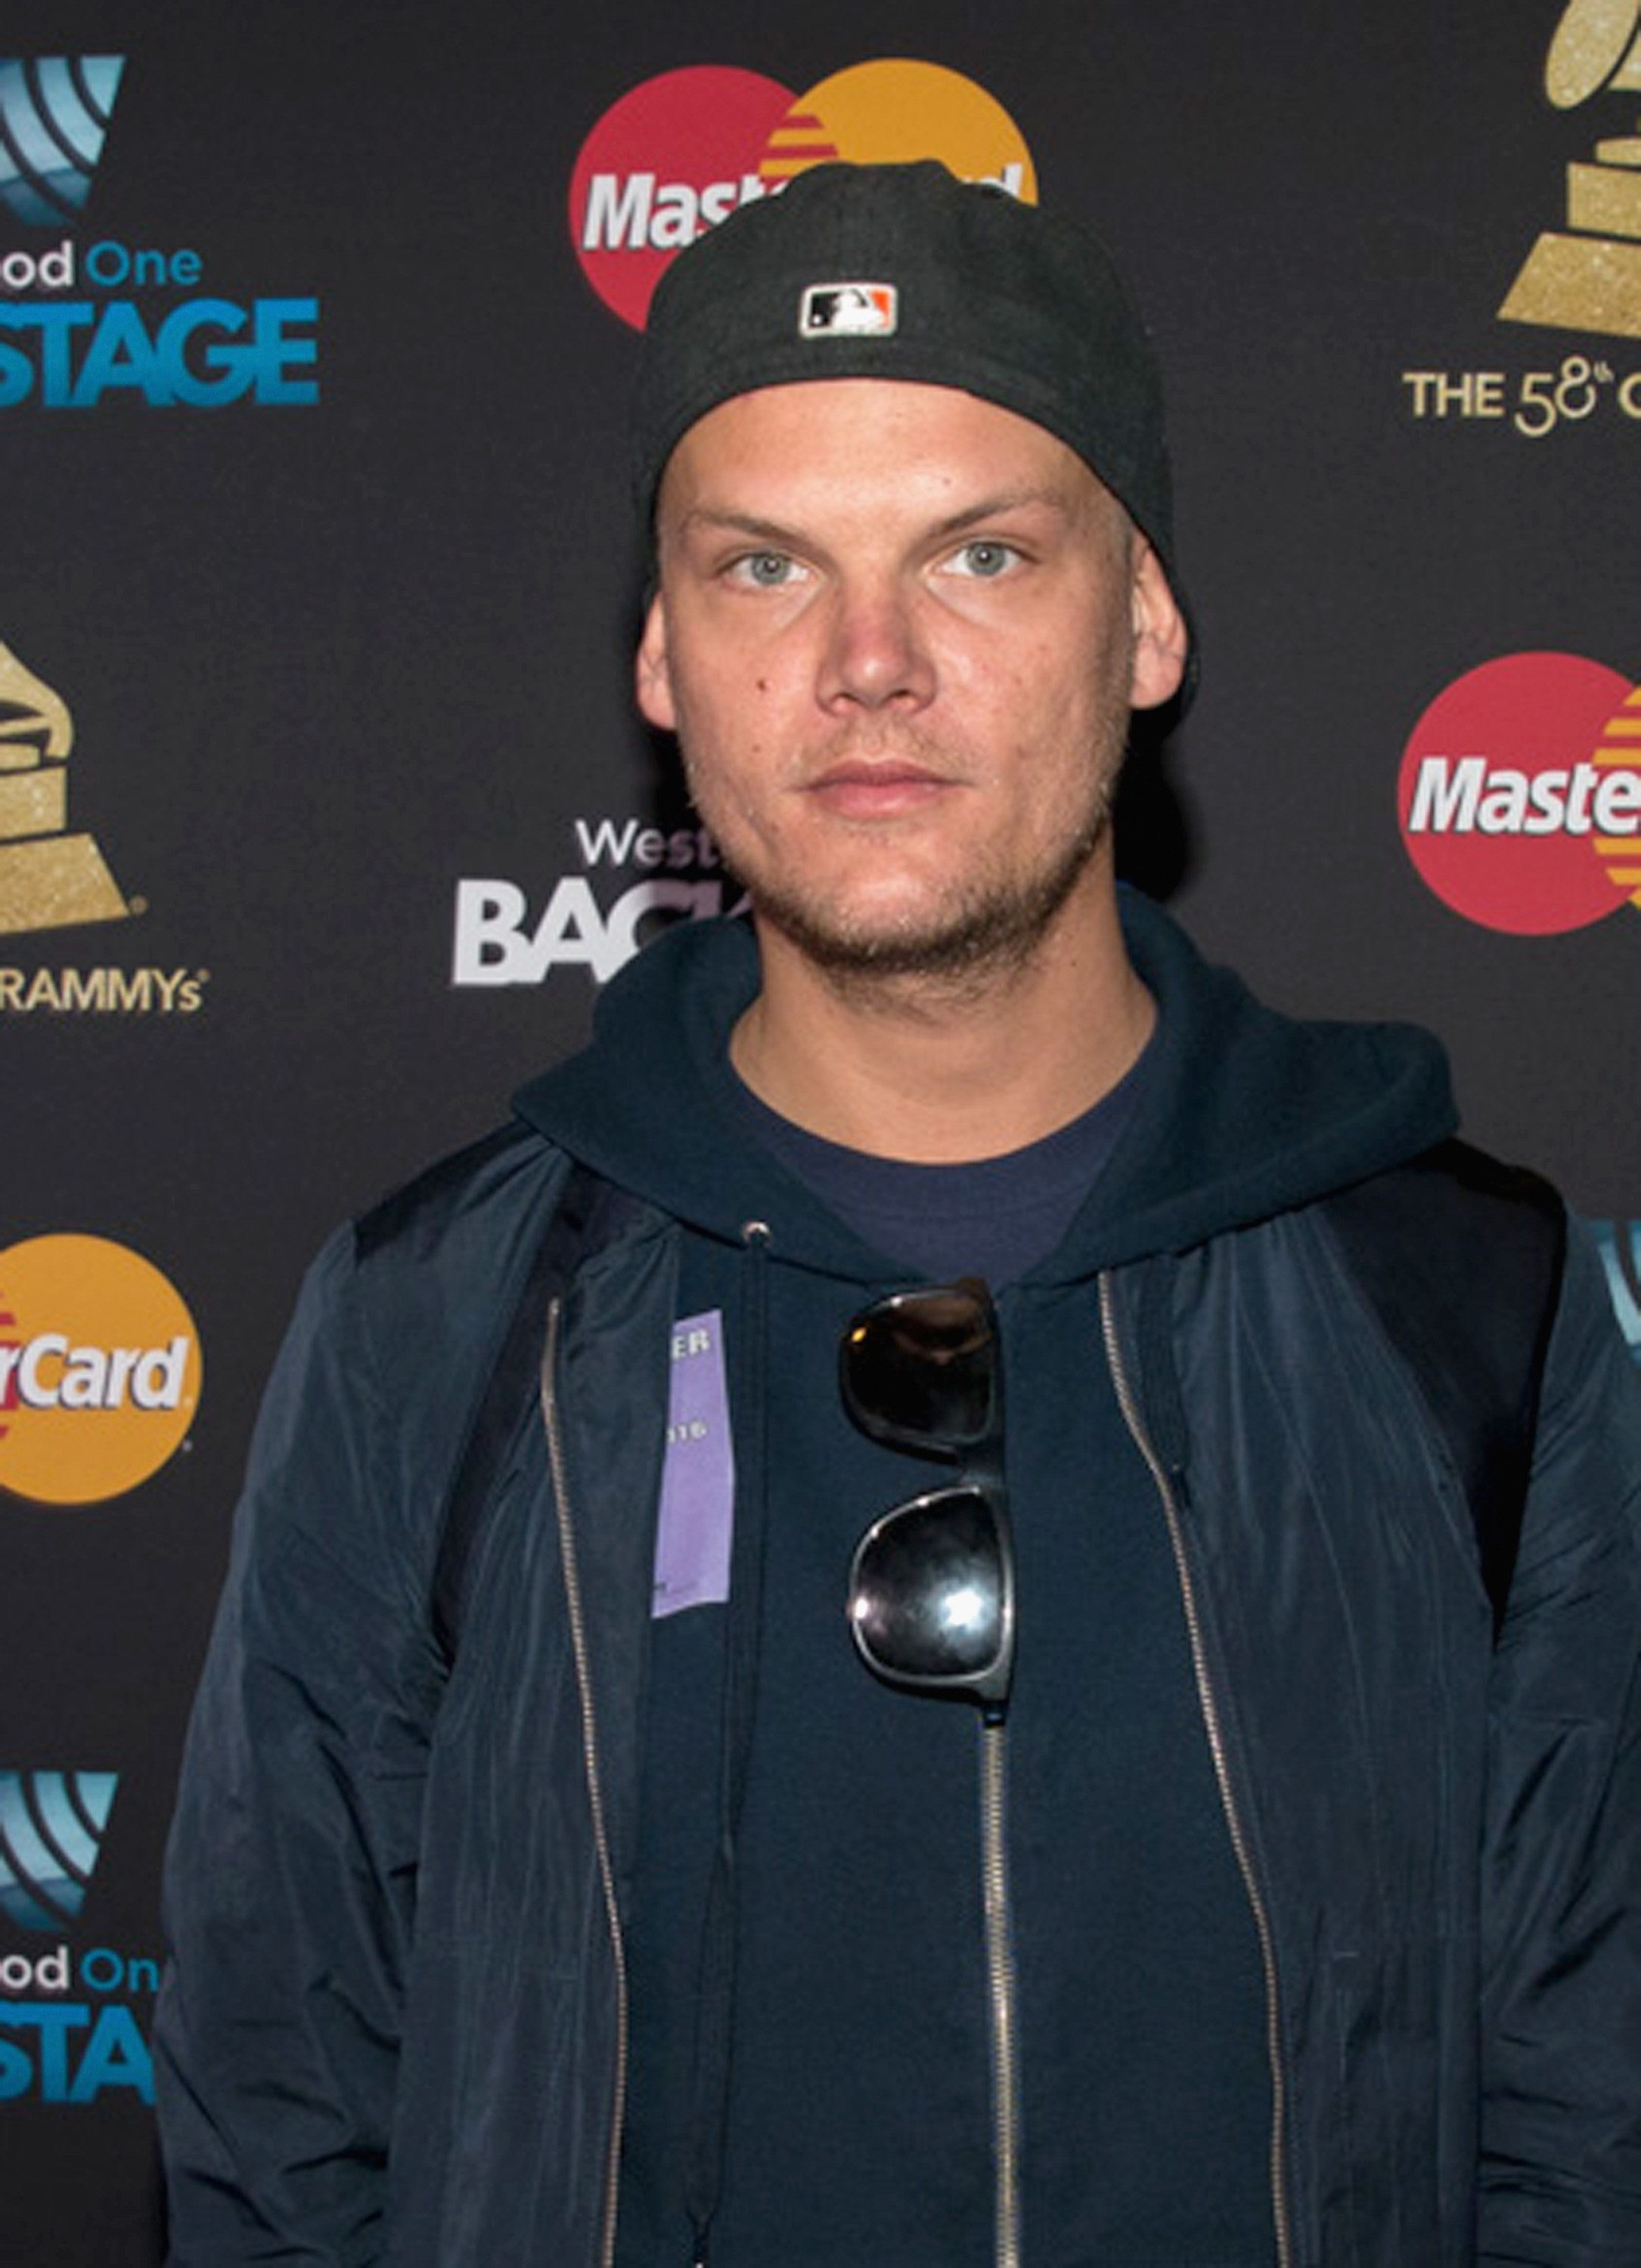 Avicii's Death Not Being Treated As Suspicious, Police Say